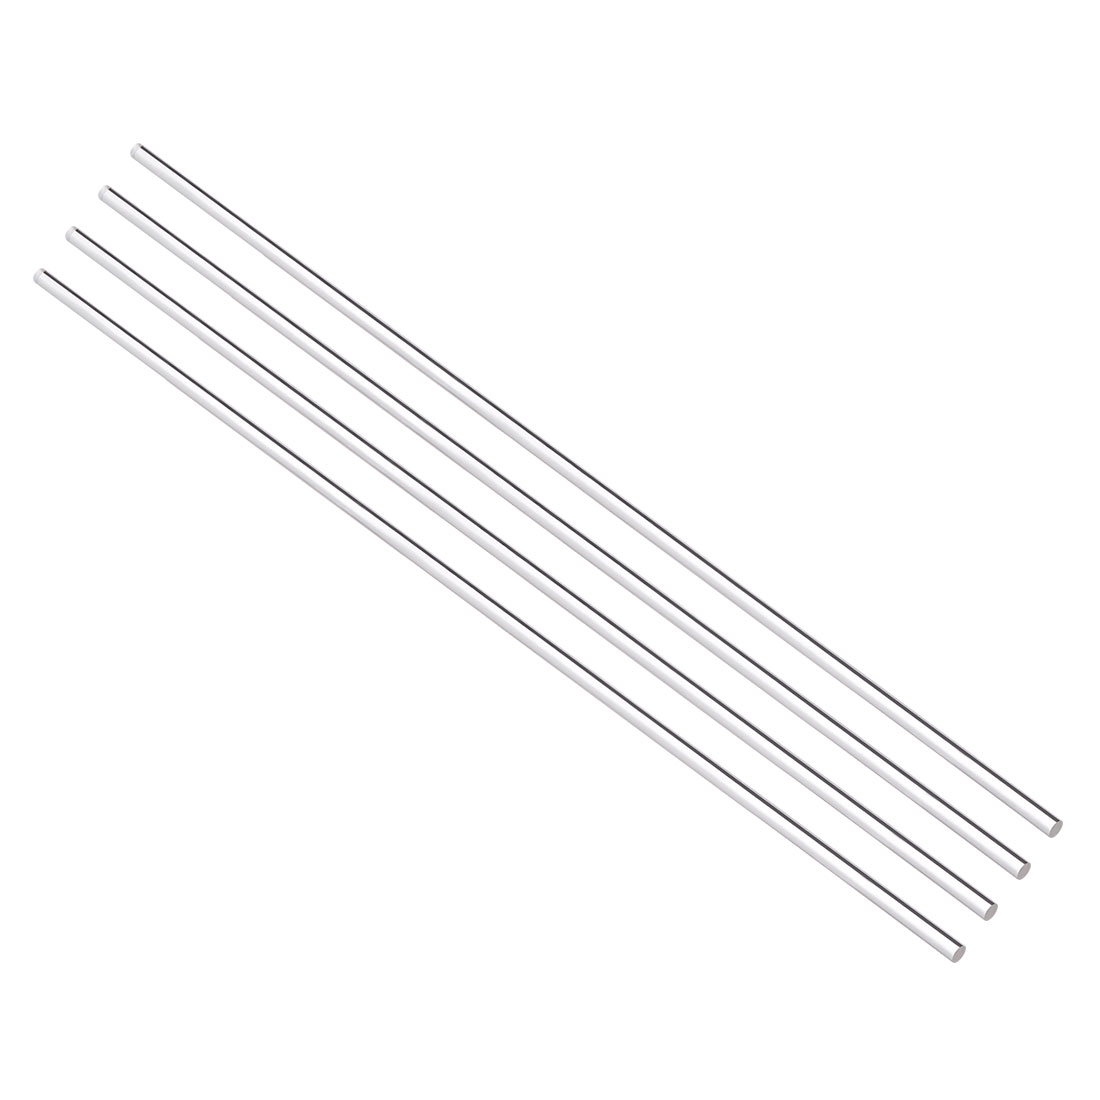 4mmx250mm Round Shape Solid Acrylic Rod PMMA Extruded Bar Clear 4Pcs